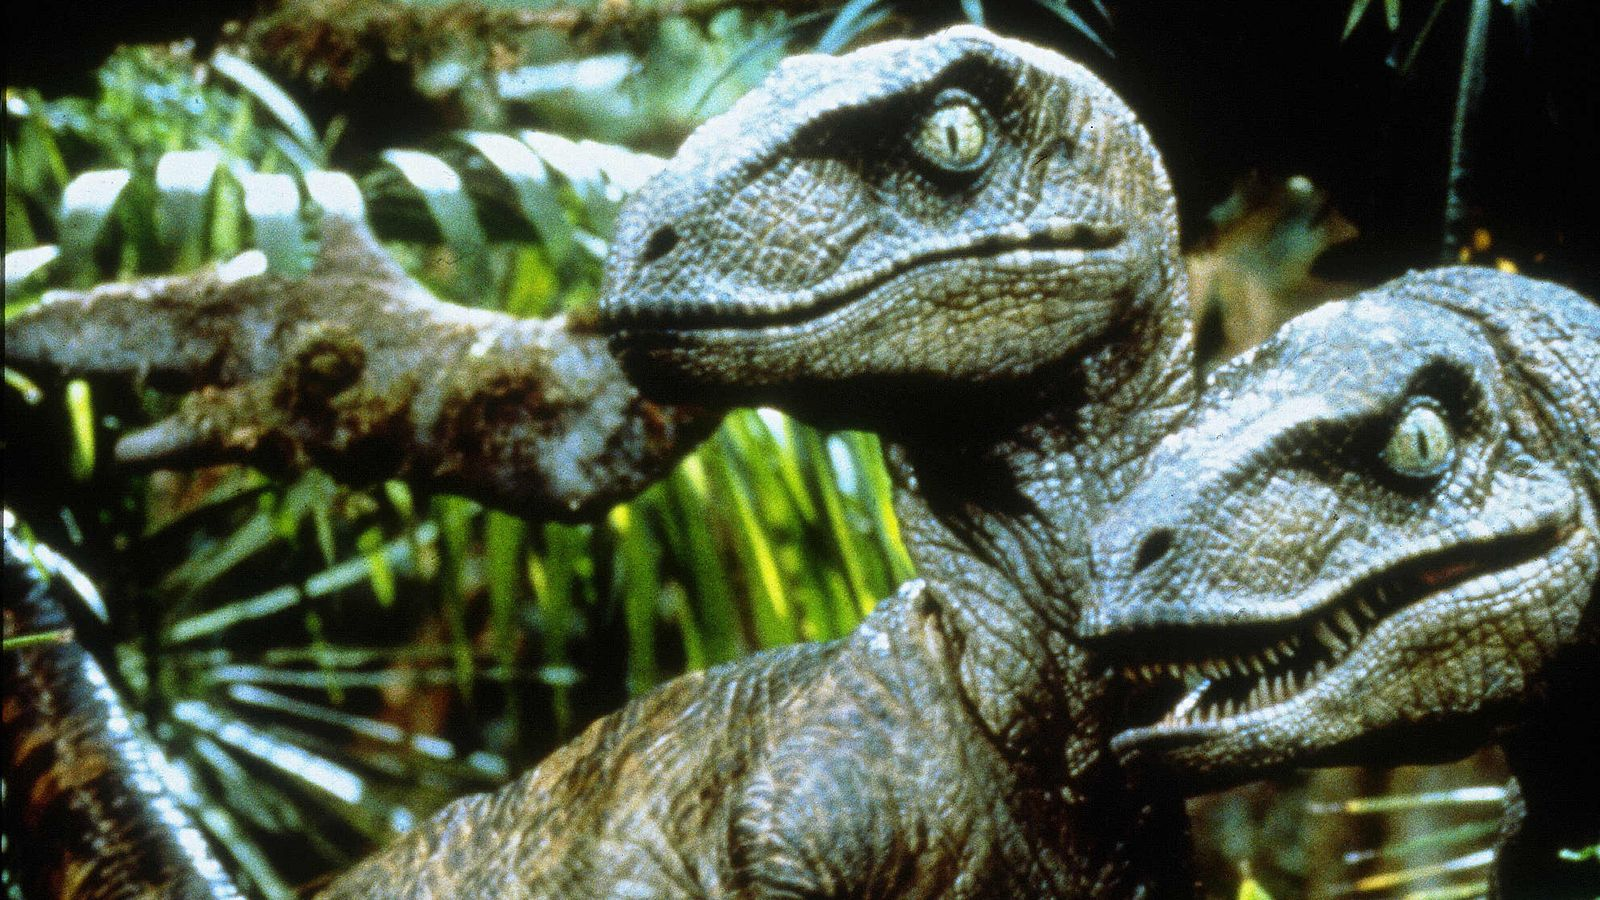 'Jurassic Park was wrong': Raptors hunted alone and not in packs, says study Skynews-velociraptor-jurassic-park_4985121